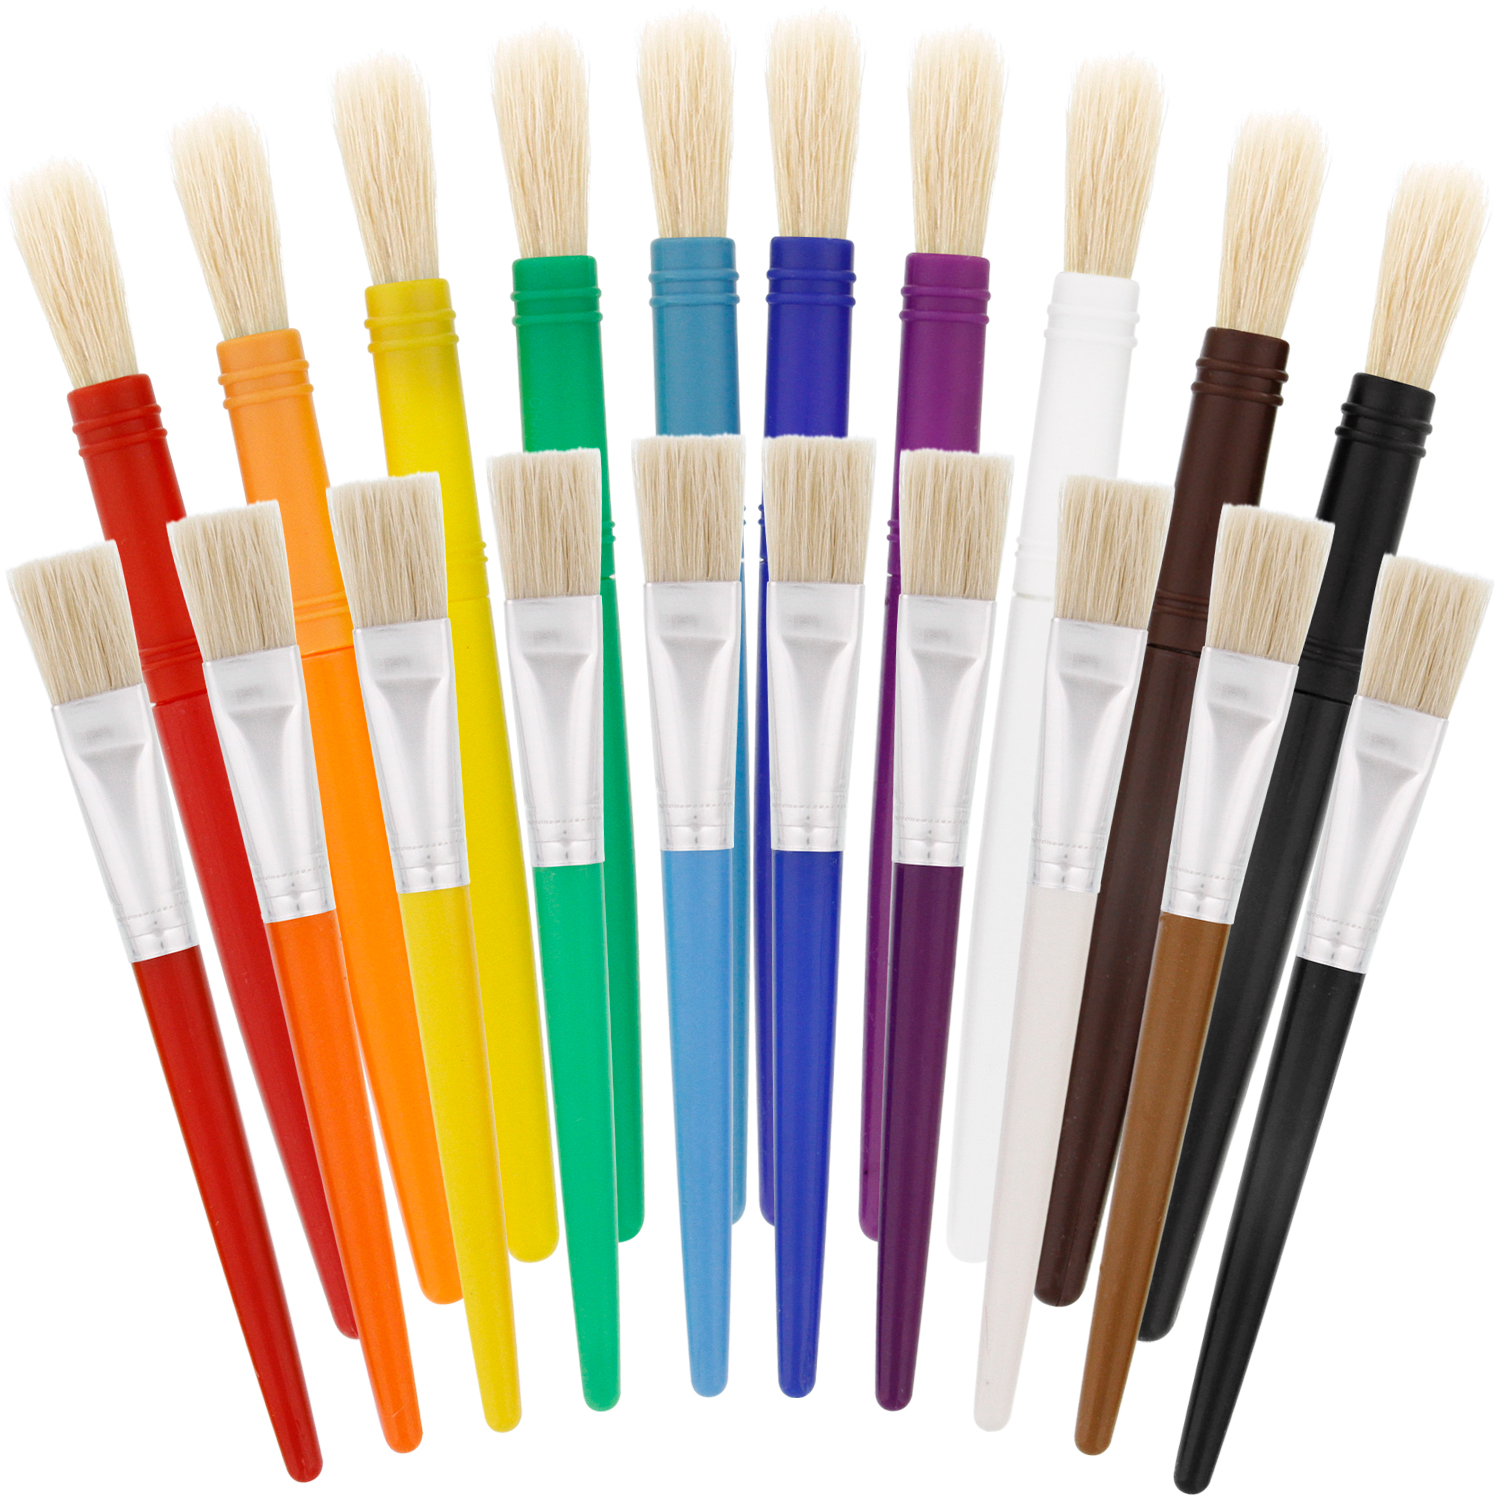 Chubby Brushes Colourful Toddler Paint Brushes Set of 4